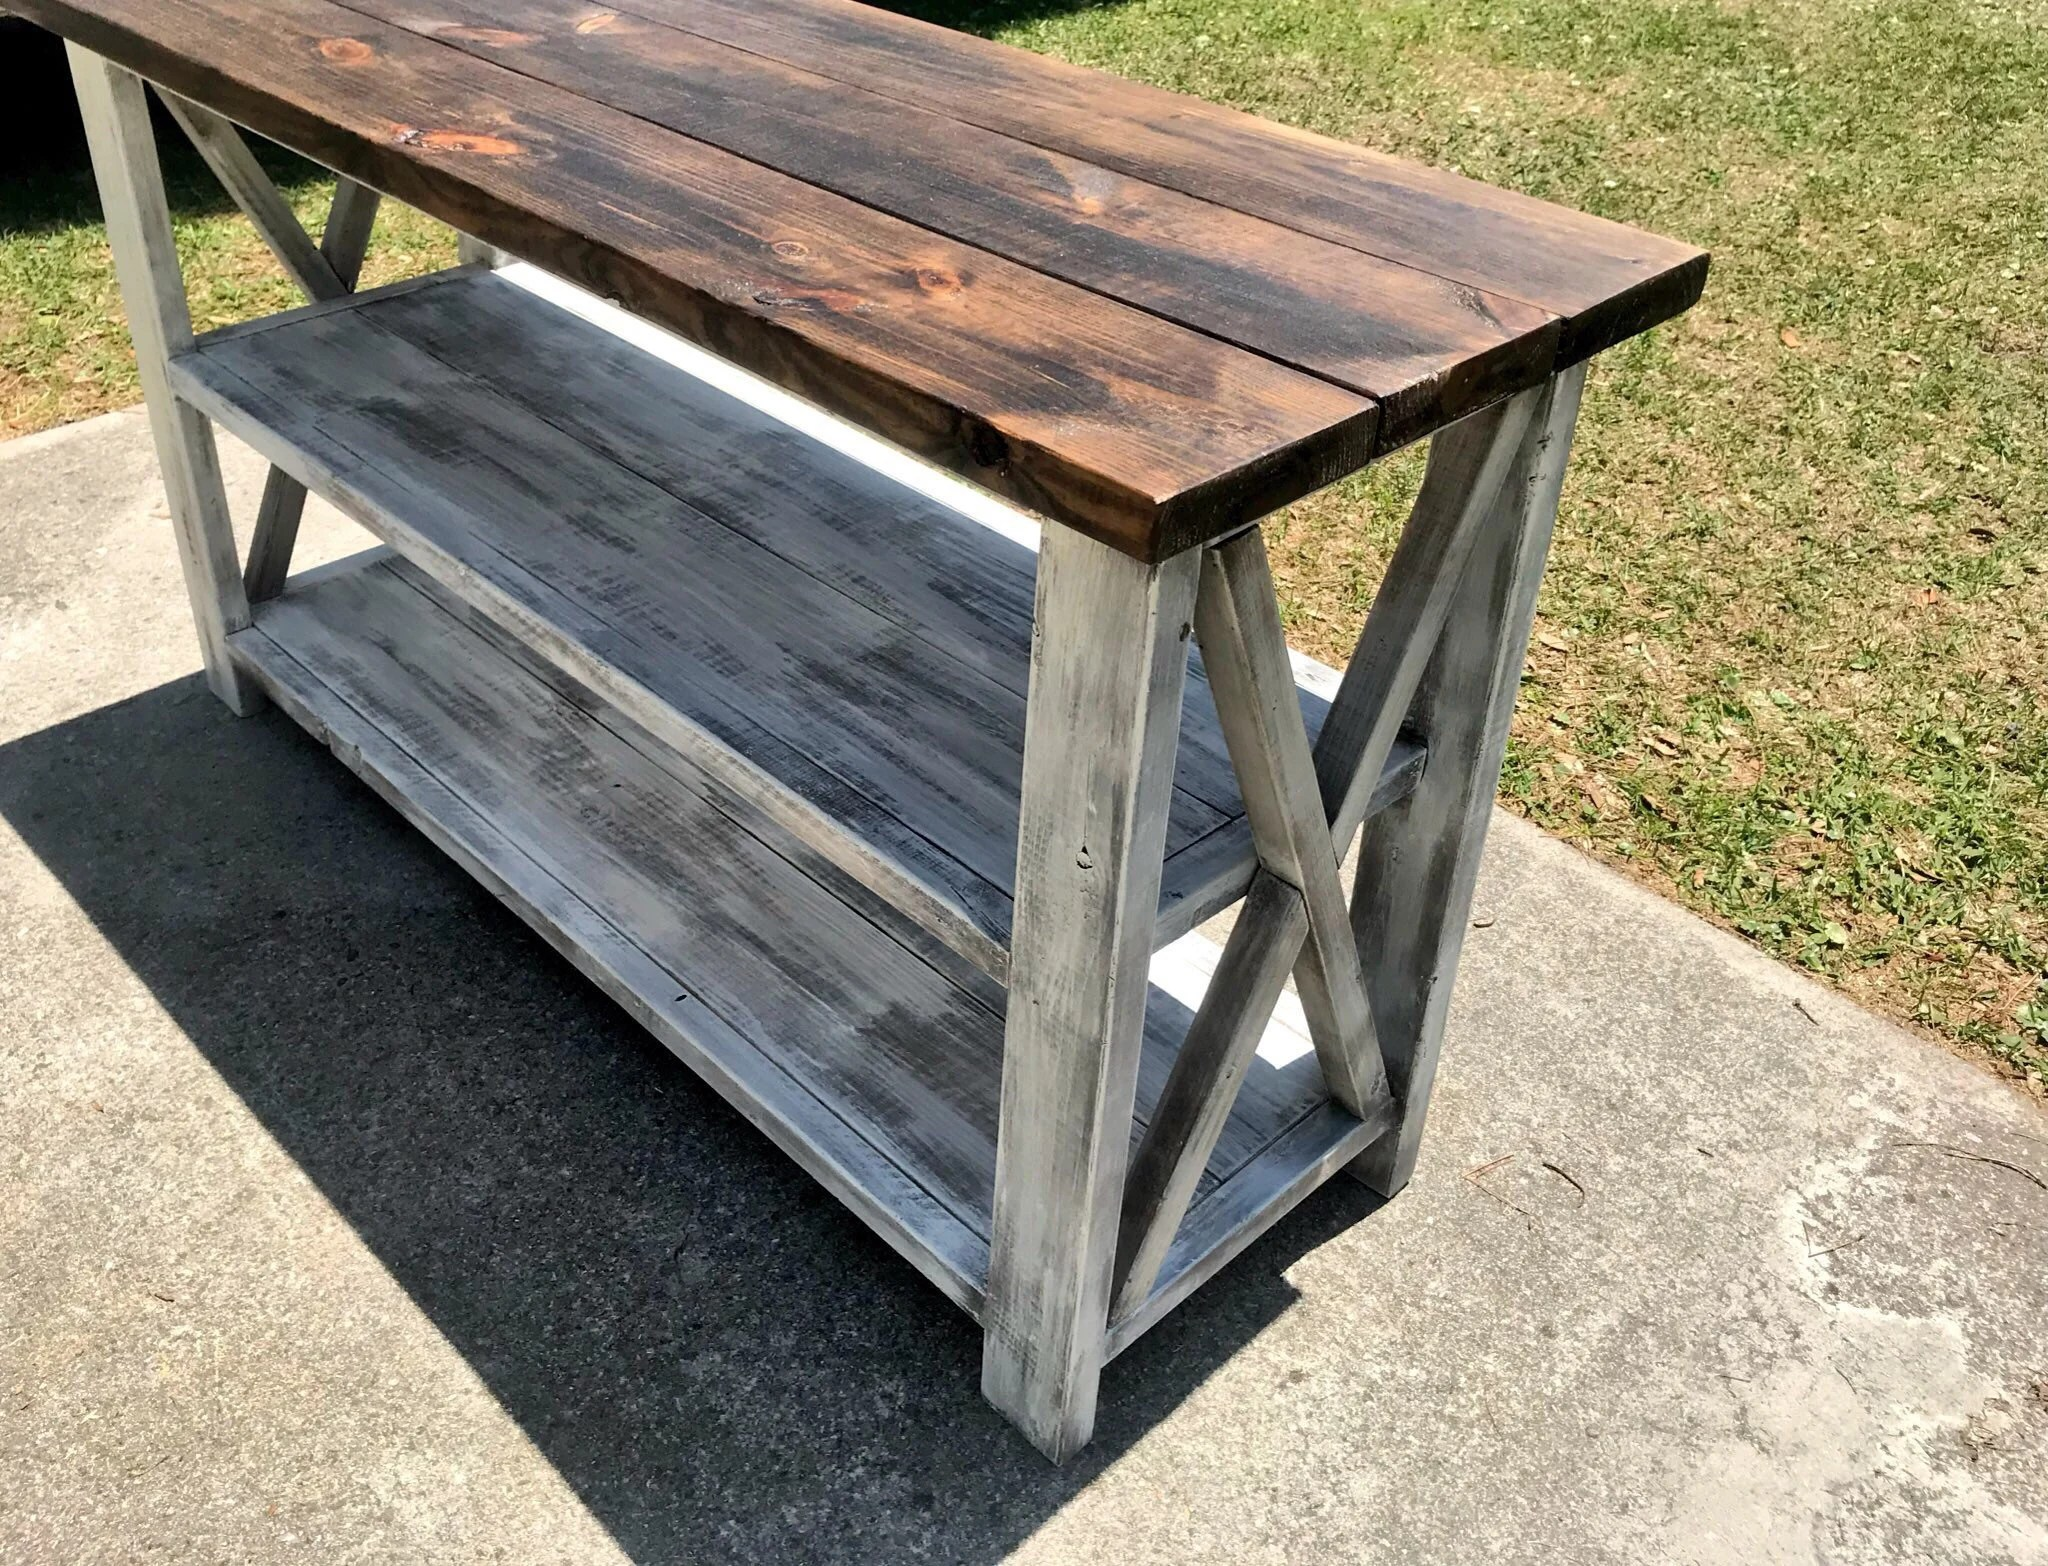 Rustic Wooden Buffet Table Rustic Console Table Farmhouse Buffet Table White Wash With White Distressed Base And Dark Walnut Top